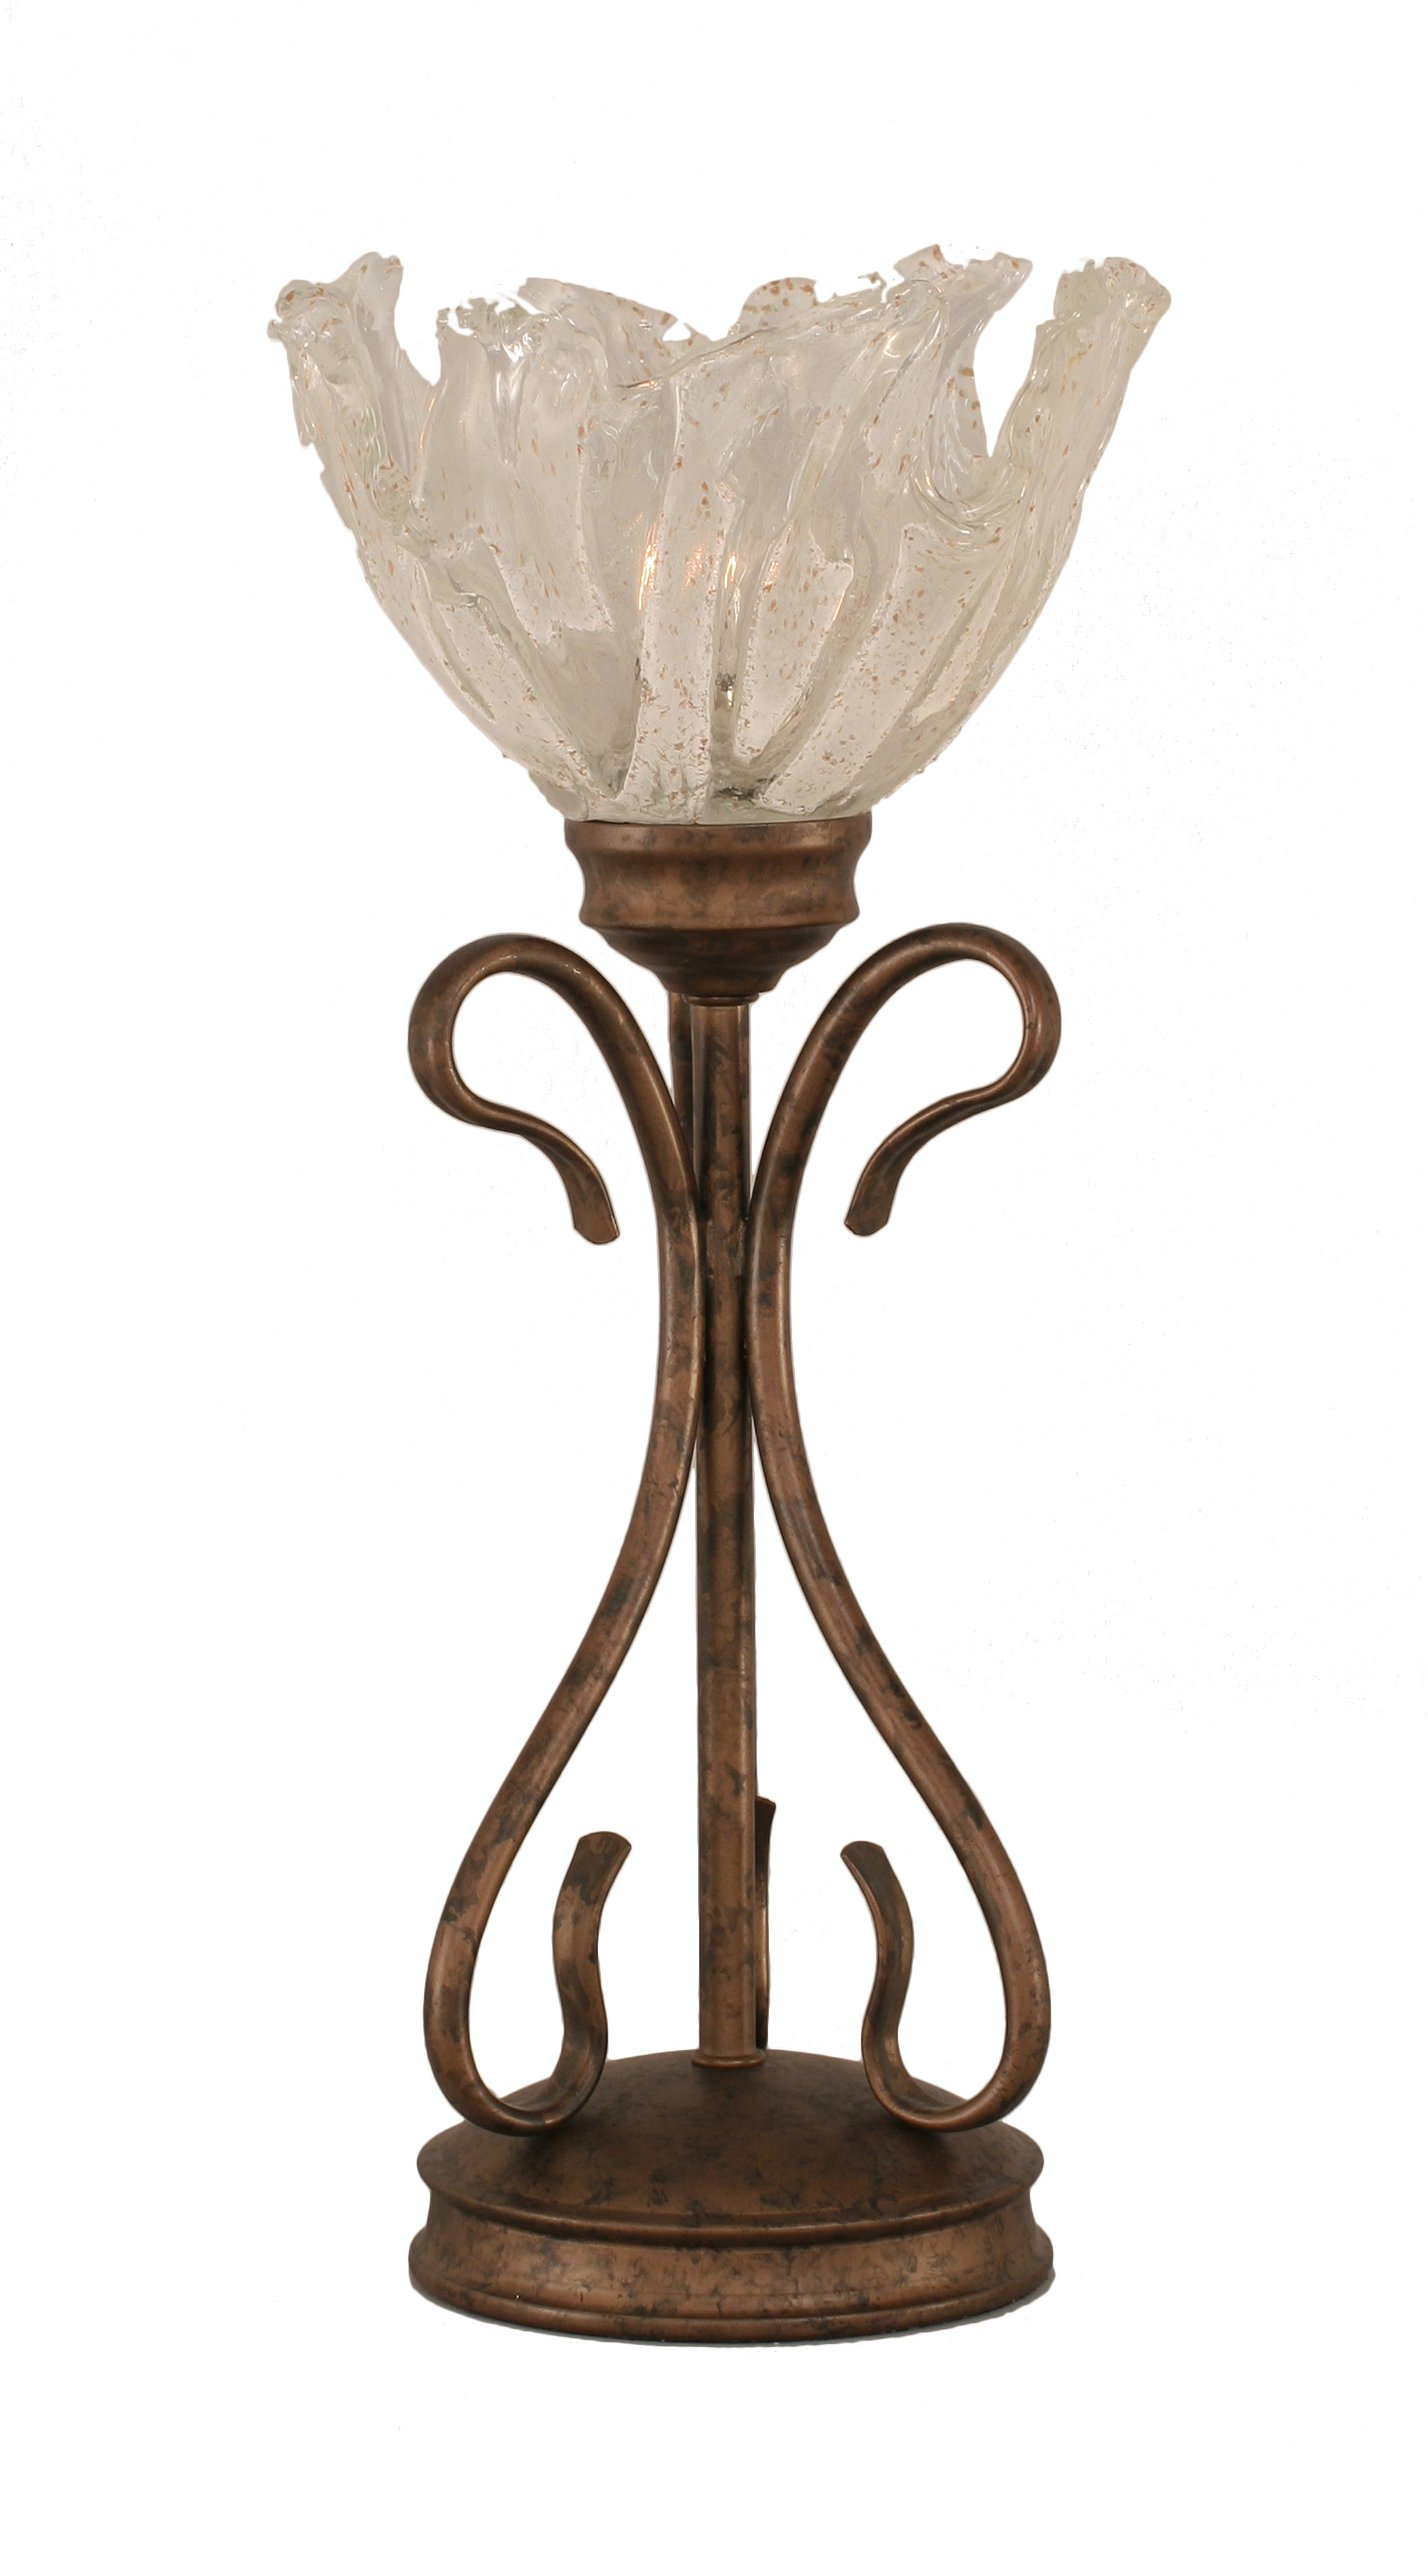 Toltec Lighting 31-BRZ-759 Swan One-Light Table Lamp Bronze Finish with Italian Ice Glass Shade, 7-Inch